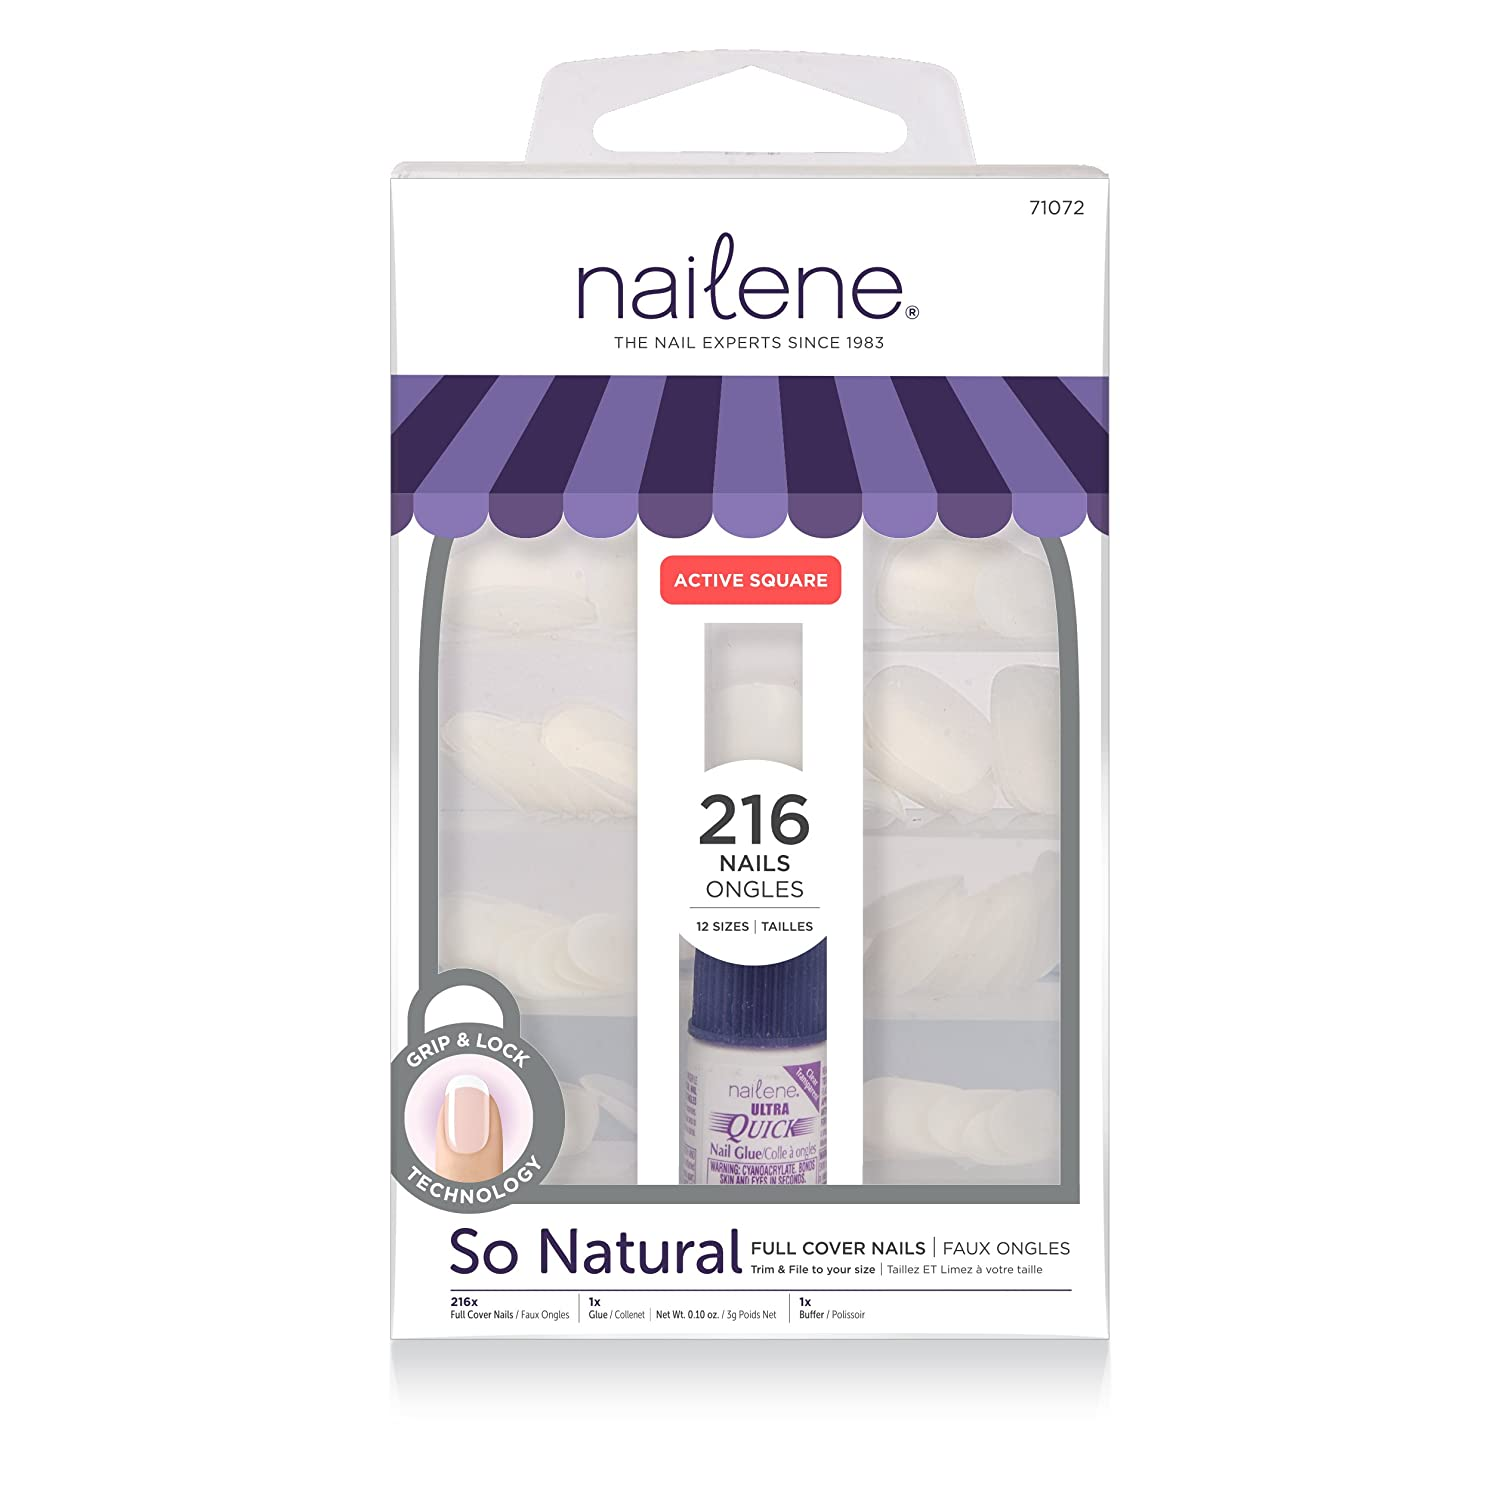 Nailene Full Cover Nails, 107.727g, 200 Count Pacific World Corporation 71072